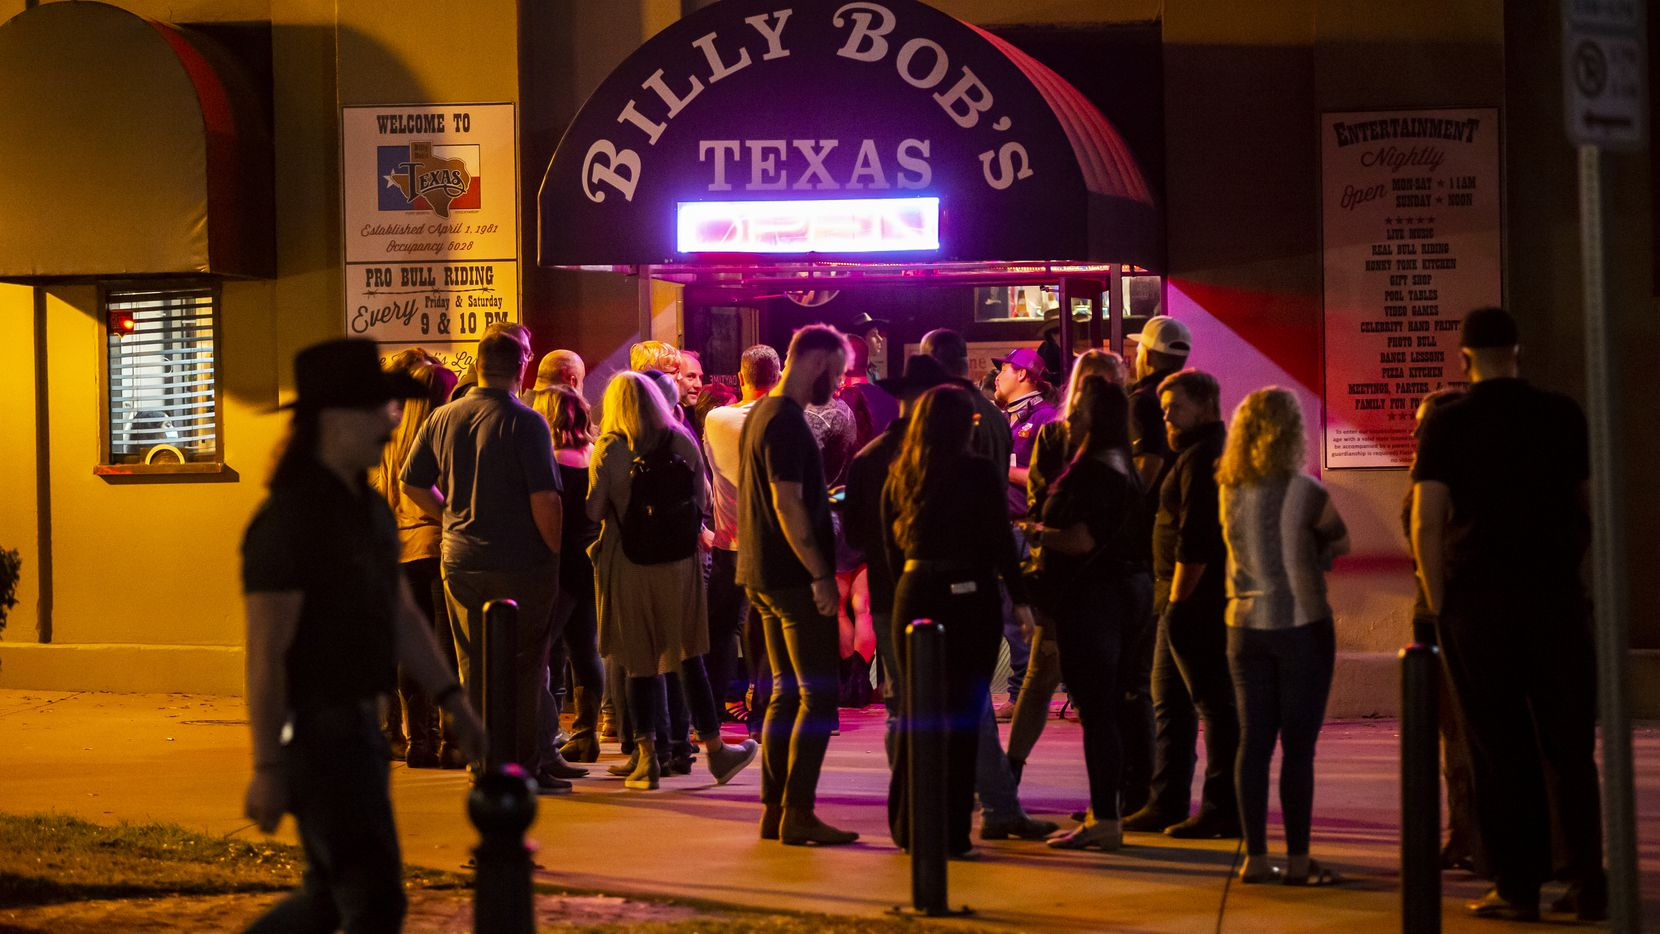 Patrons, largely without masks, line up to enter Billy Bob's Texas in Fort Worth, Friday, March 12, 2021. Aaron Lewis performed Friday night, the first weekend concert at Billy Bob's since the mask mandate was lifted.